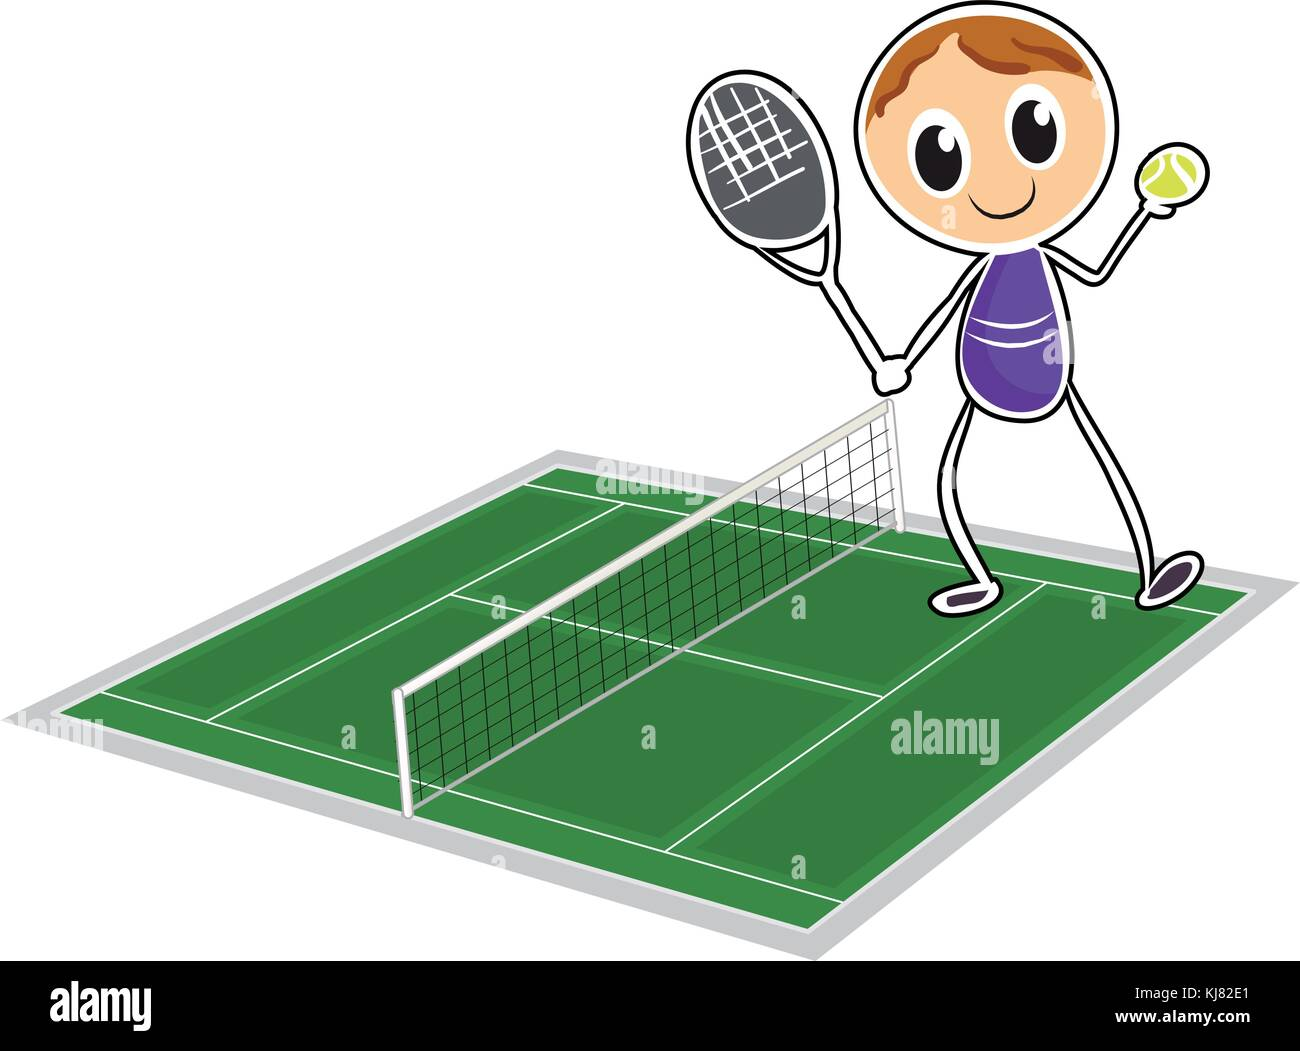 Illustration of a young boy playing tennis on a white background - Stock Image